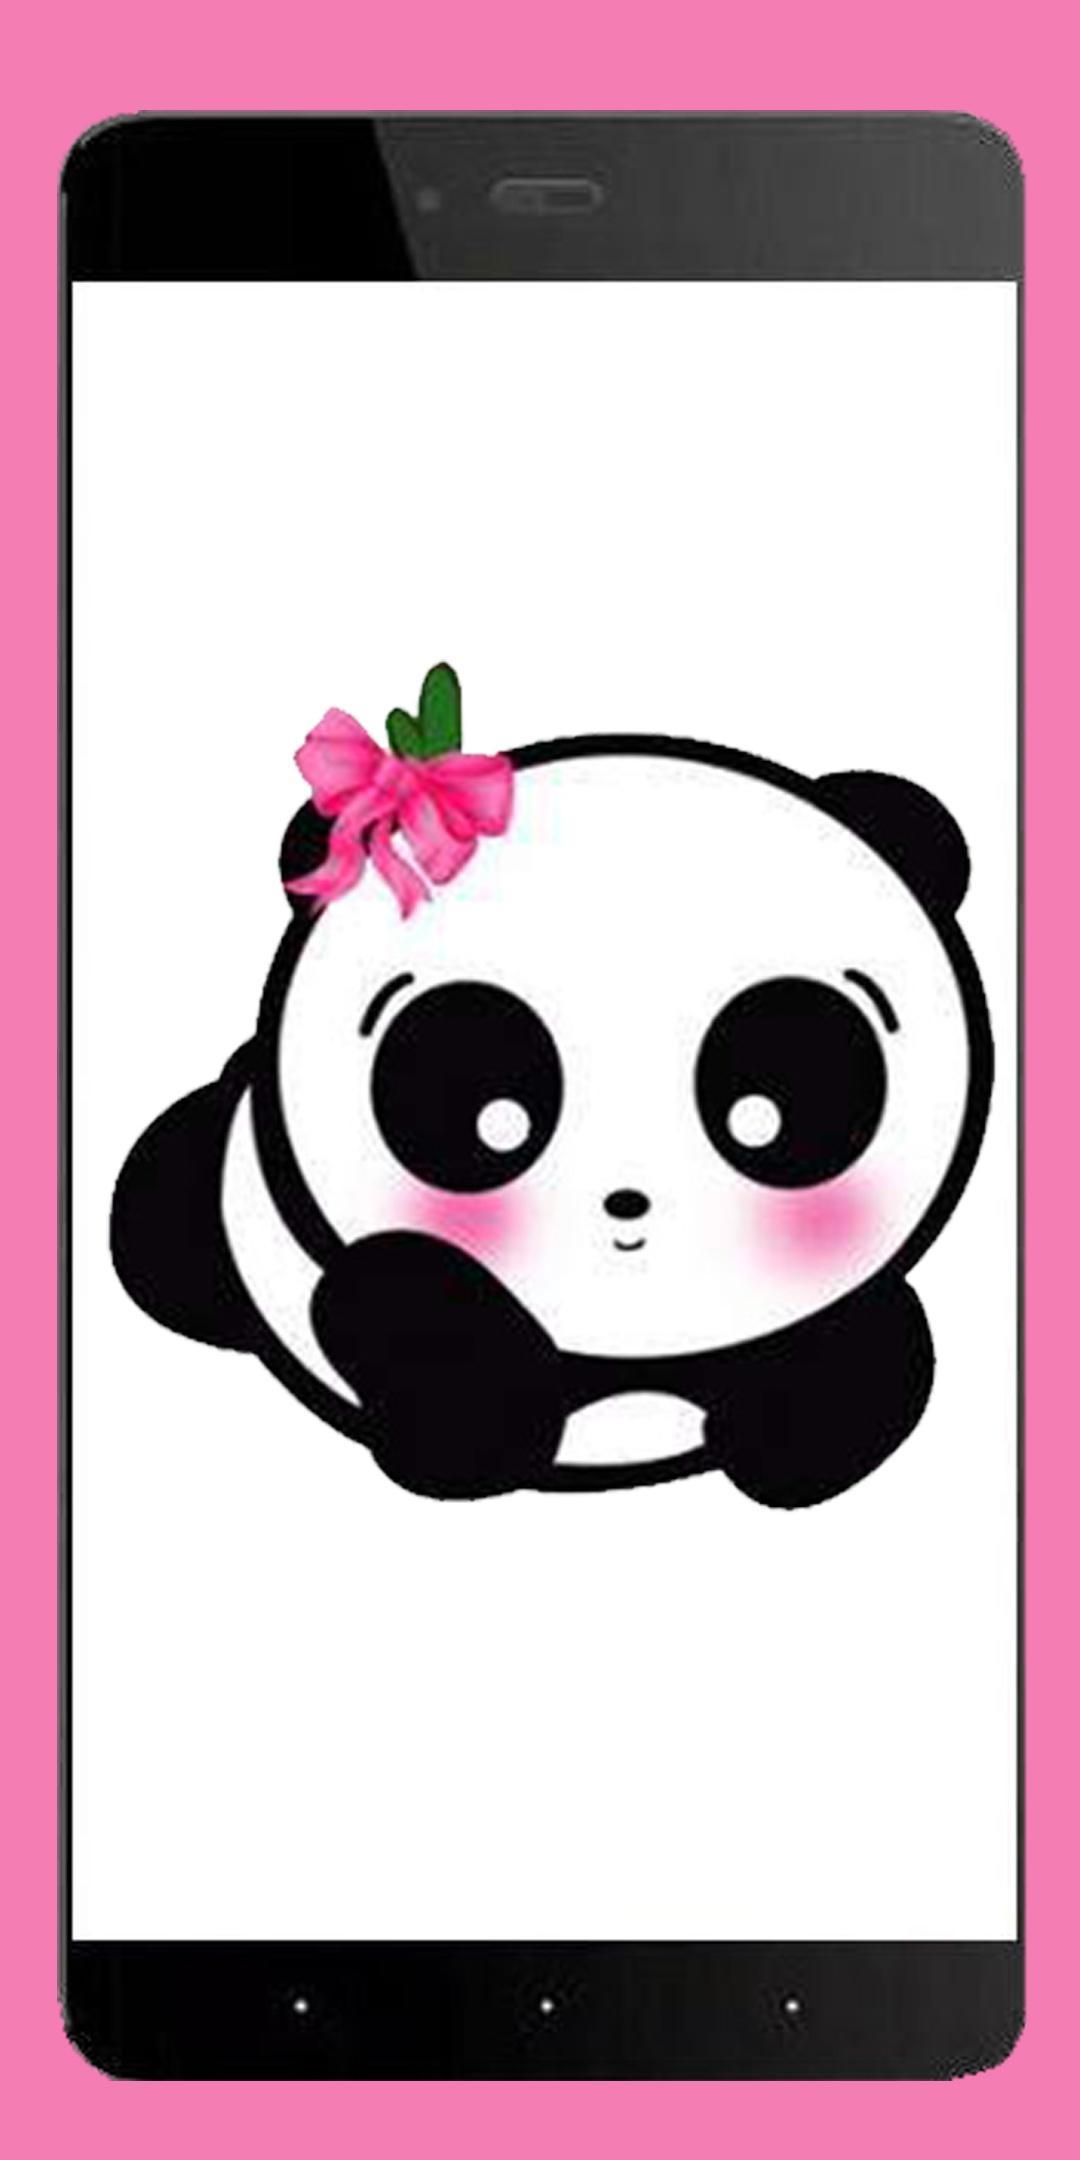 Wallpapers Pandas Posted By Zoey Johnson